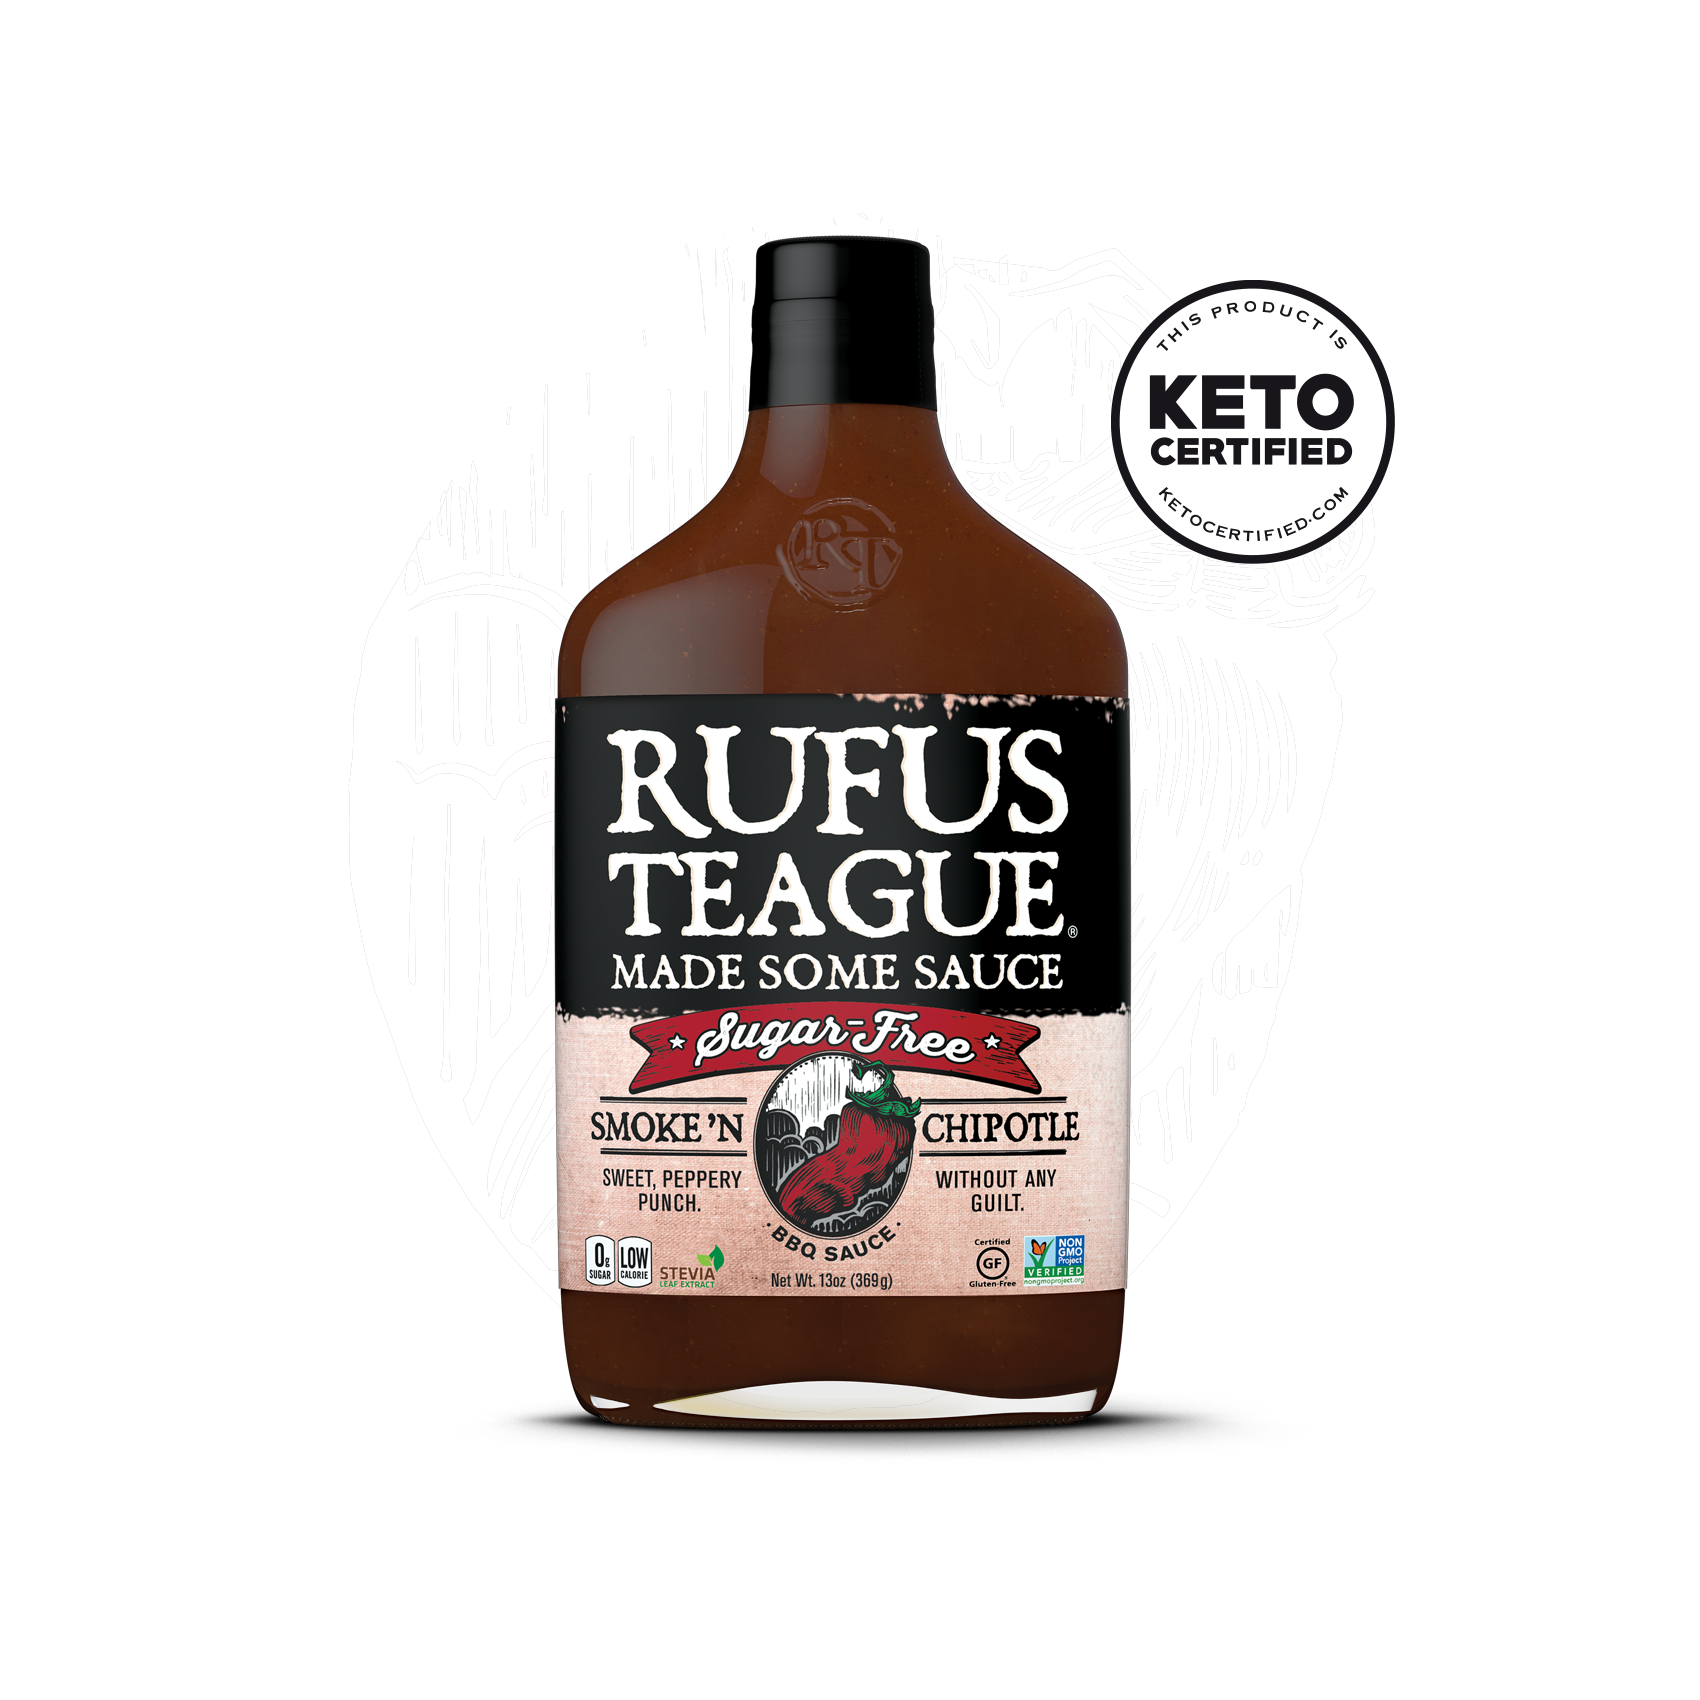 Smoke N' Chipotle BBQ w: logo - Rufus Teague - Keto Certified by the Paleo Foundation